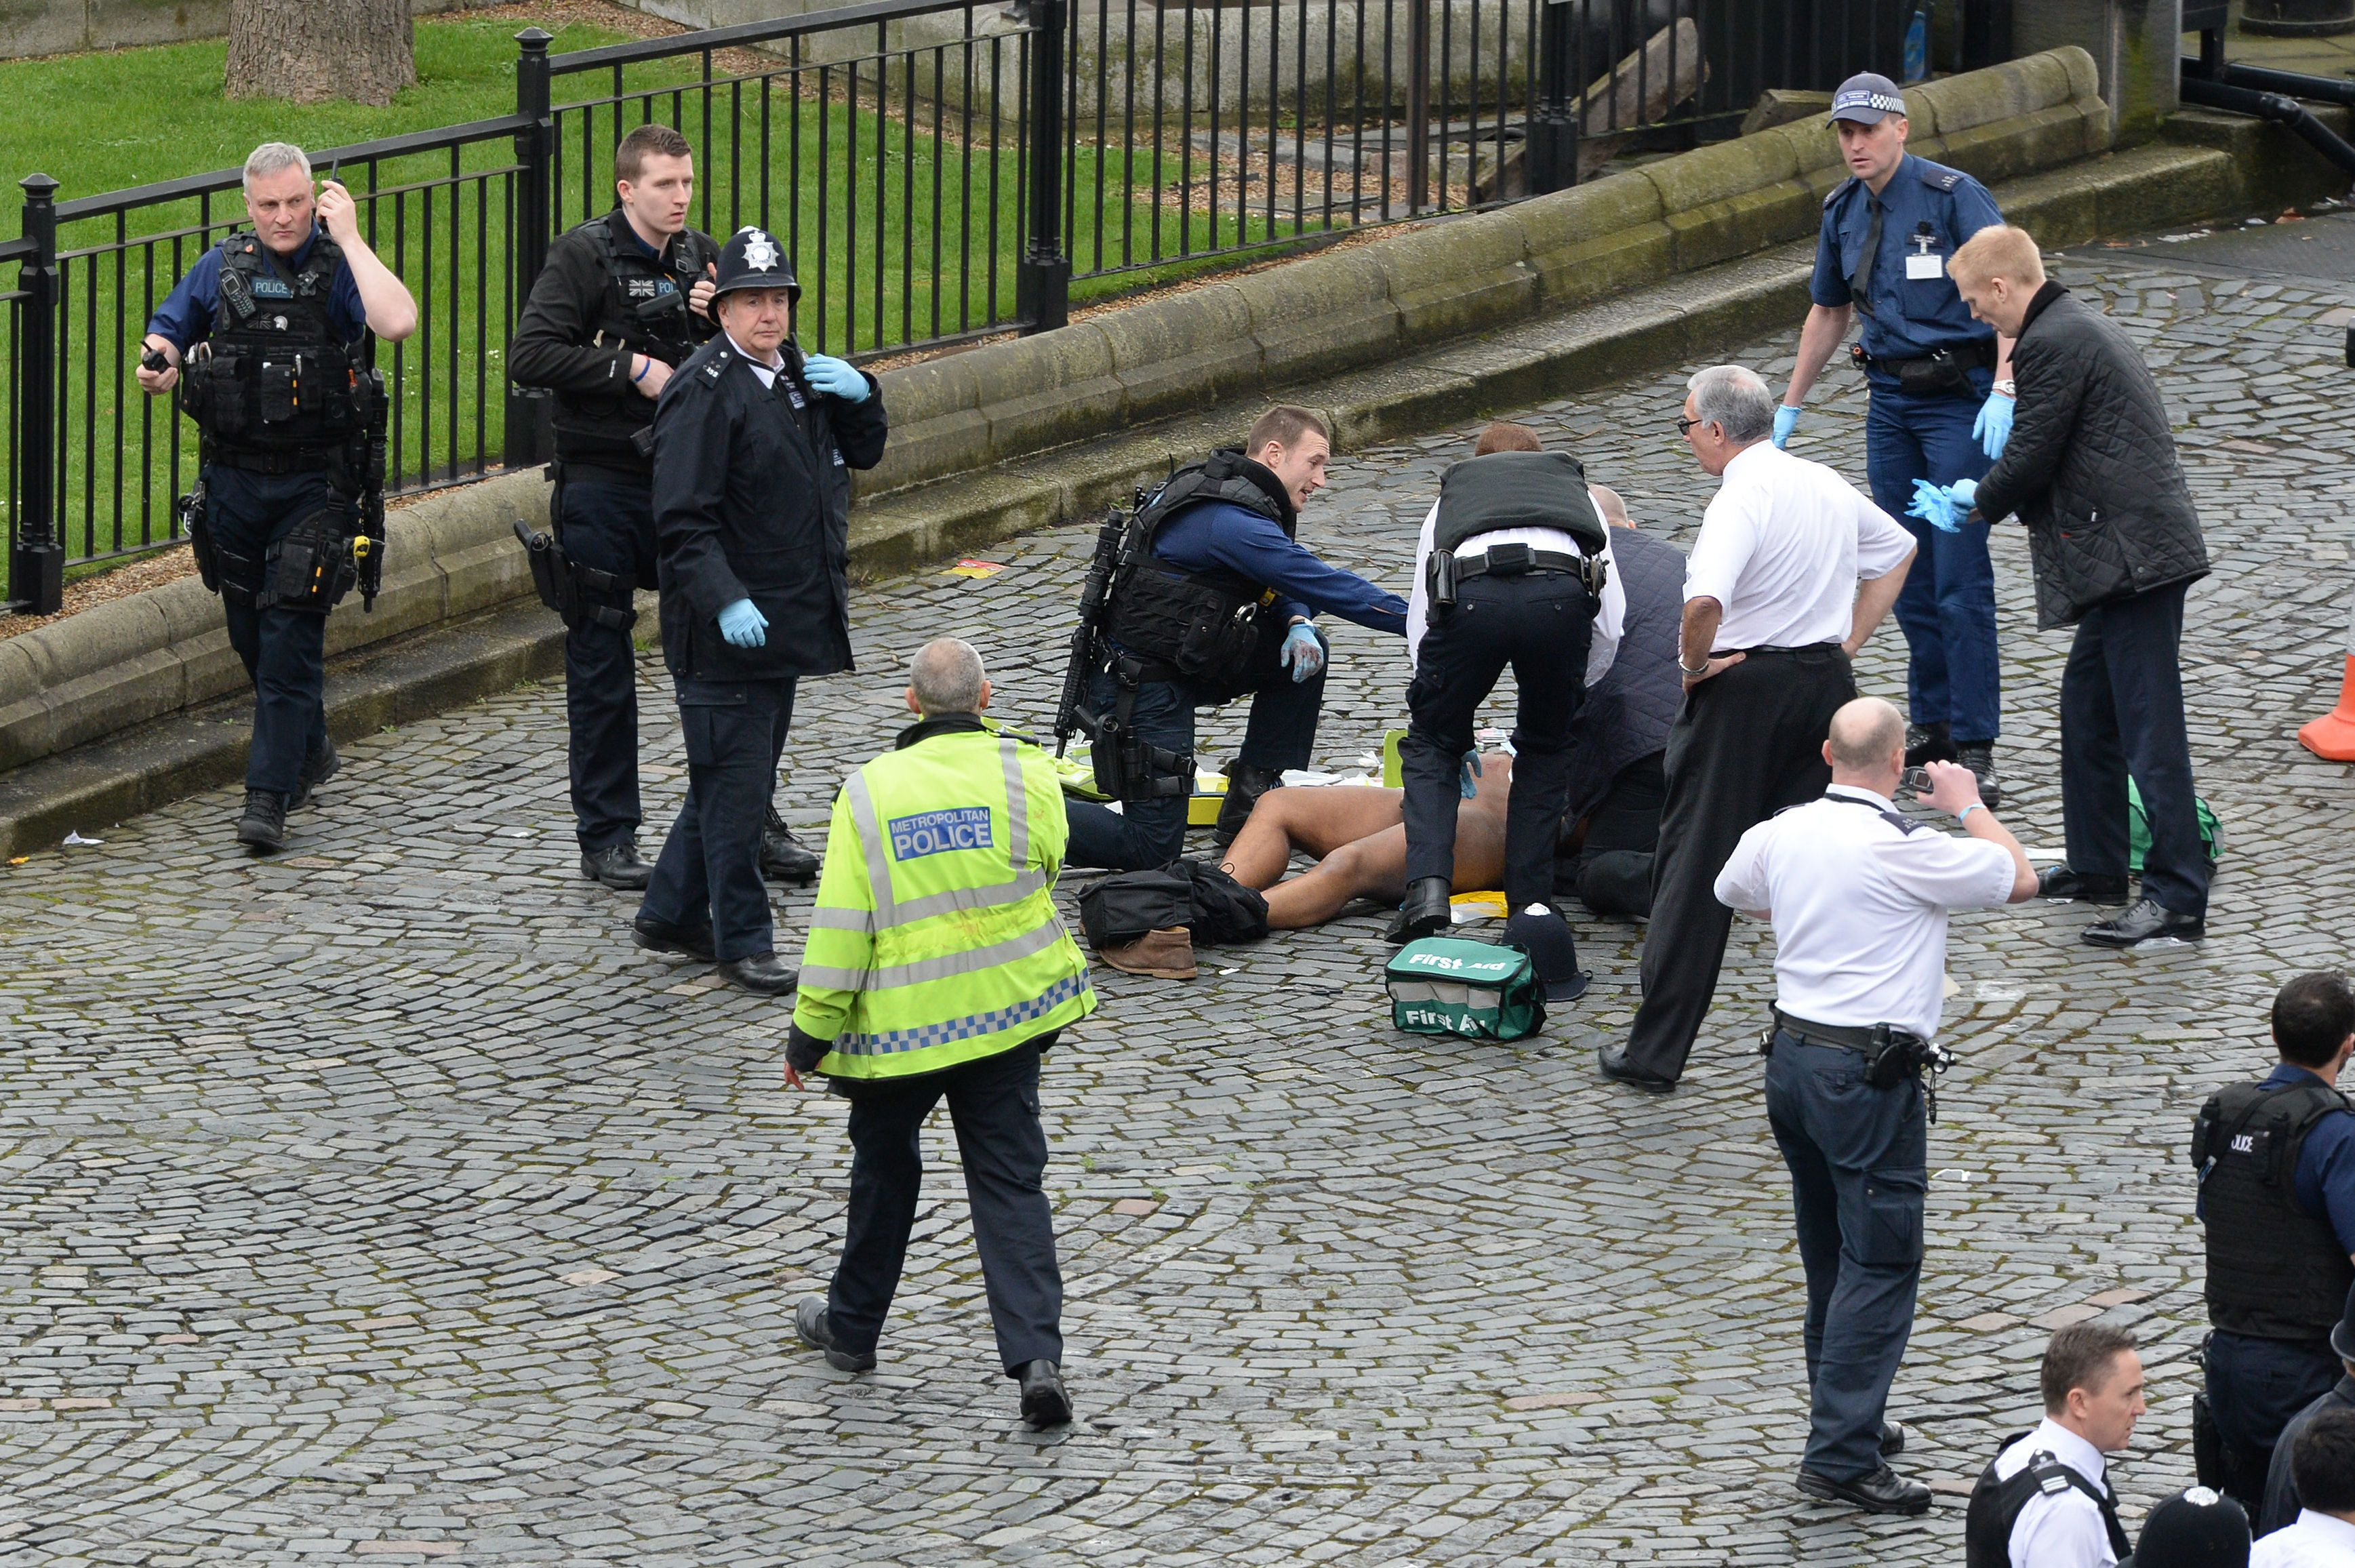 Bodyguard Who Fatally Shot Westminster Attacker Tells Inquest 'He Was Going To Kill